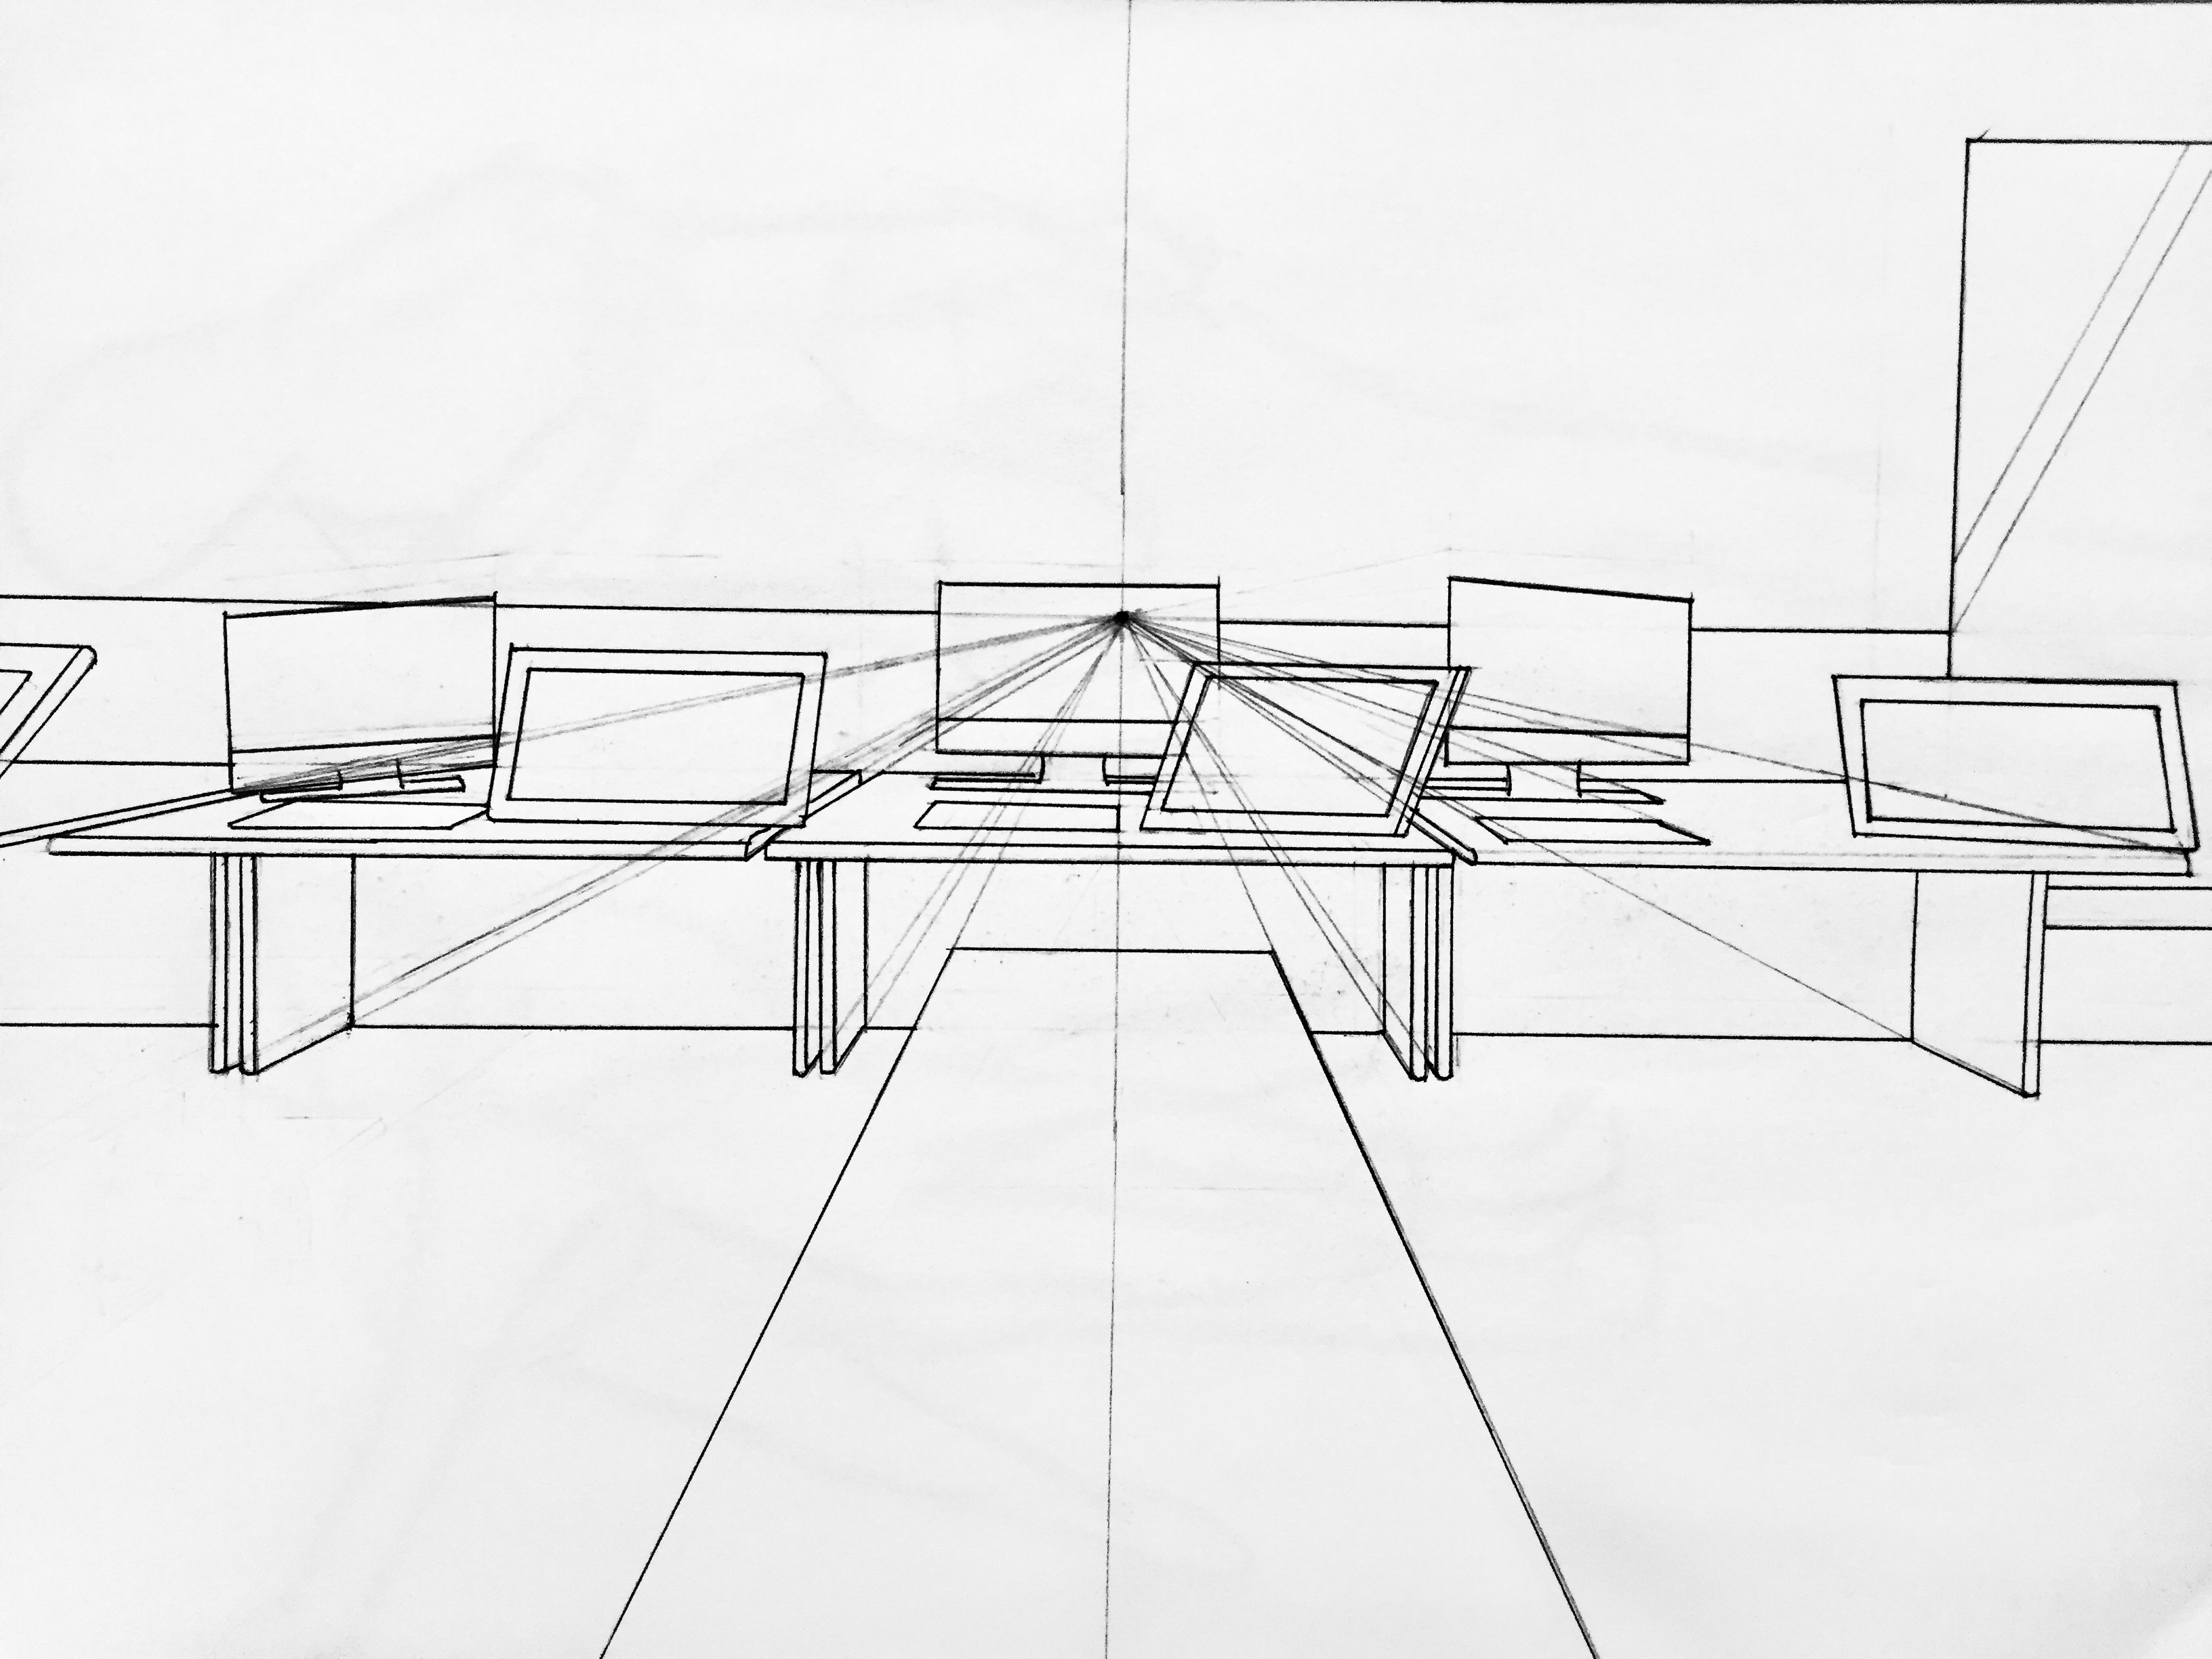 A 1-point perspective drawing of the animation room, including table, desks, computers, and Wacoms.